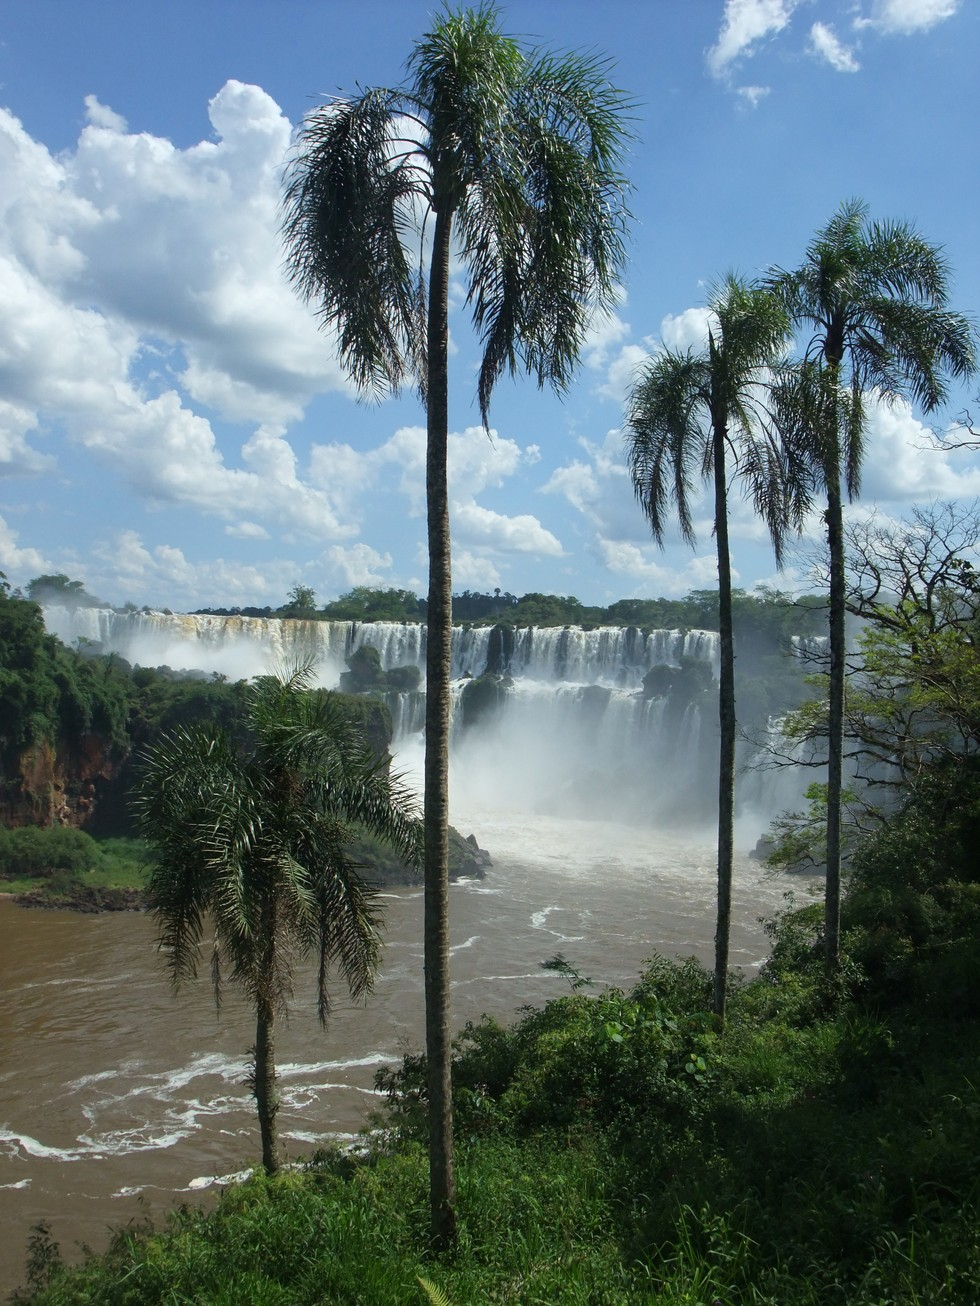 The Iguazu Falls in the rain forest on the border of Brazil and Argentina